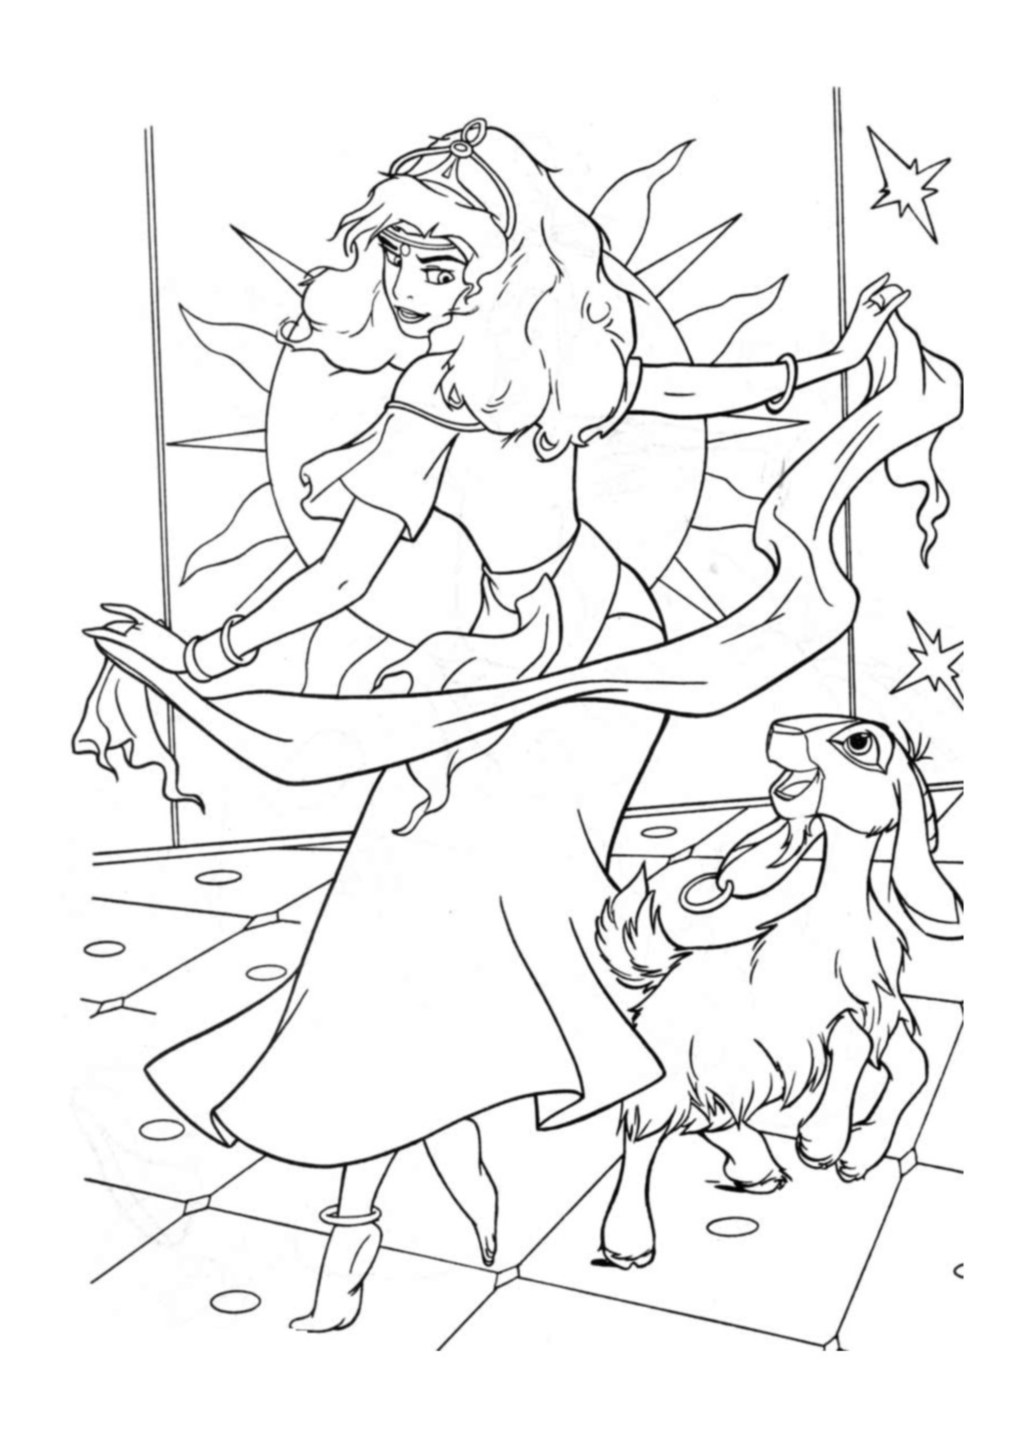 Funny The Hunchback Of Notre Dame coloring page for children